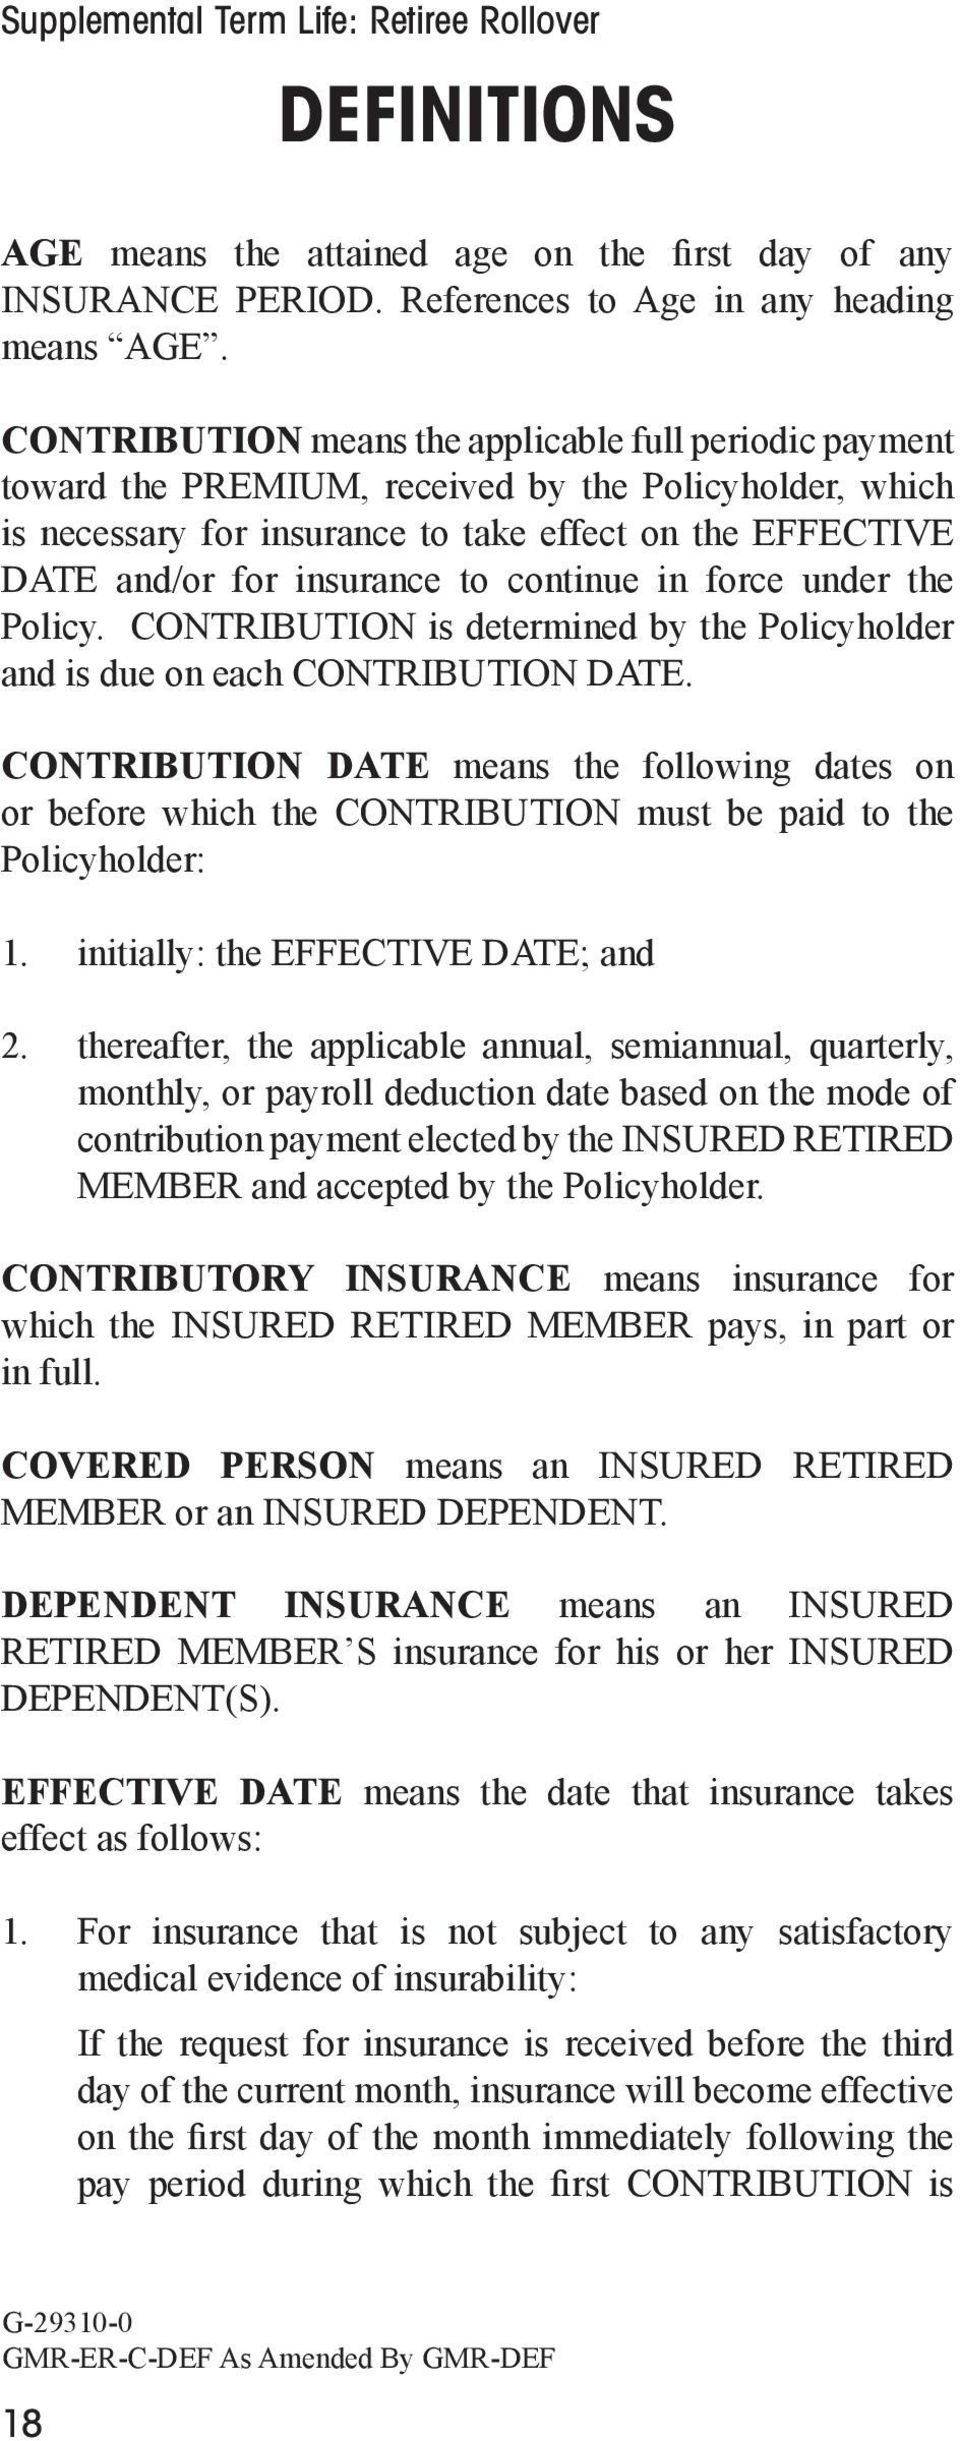 continue in force under the Policy. CONTRIBUTION is determined by the Policyholder and is due on each CONTRIBUTION DATE.